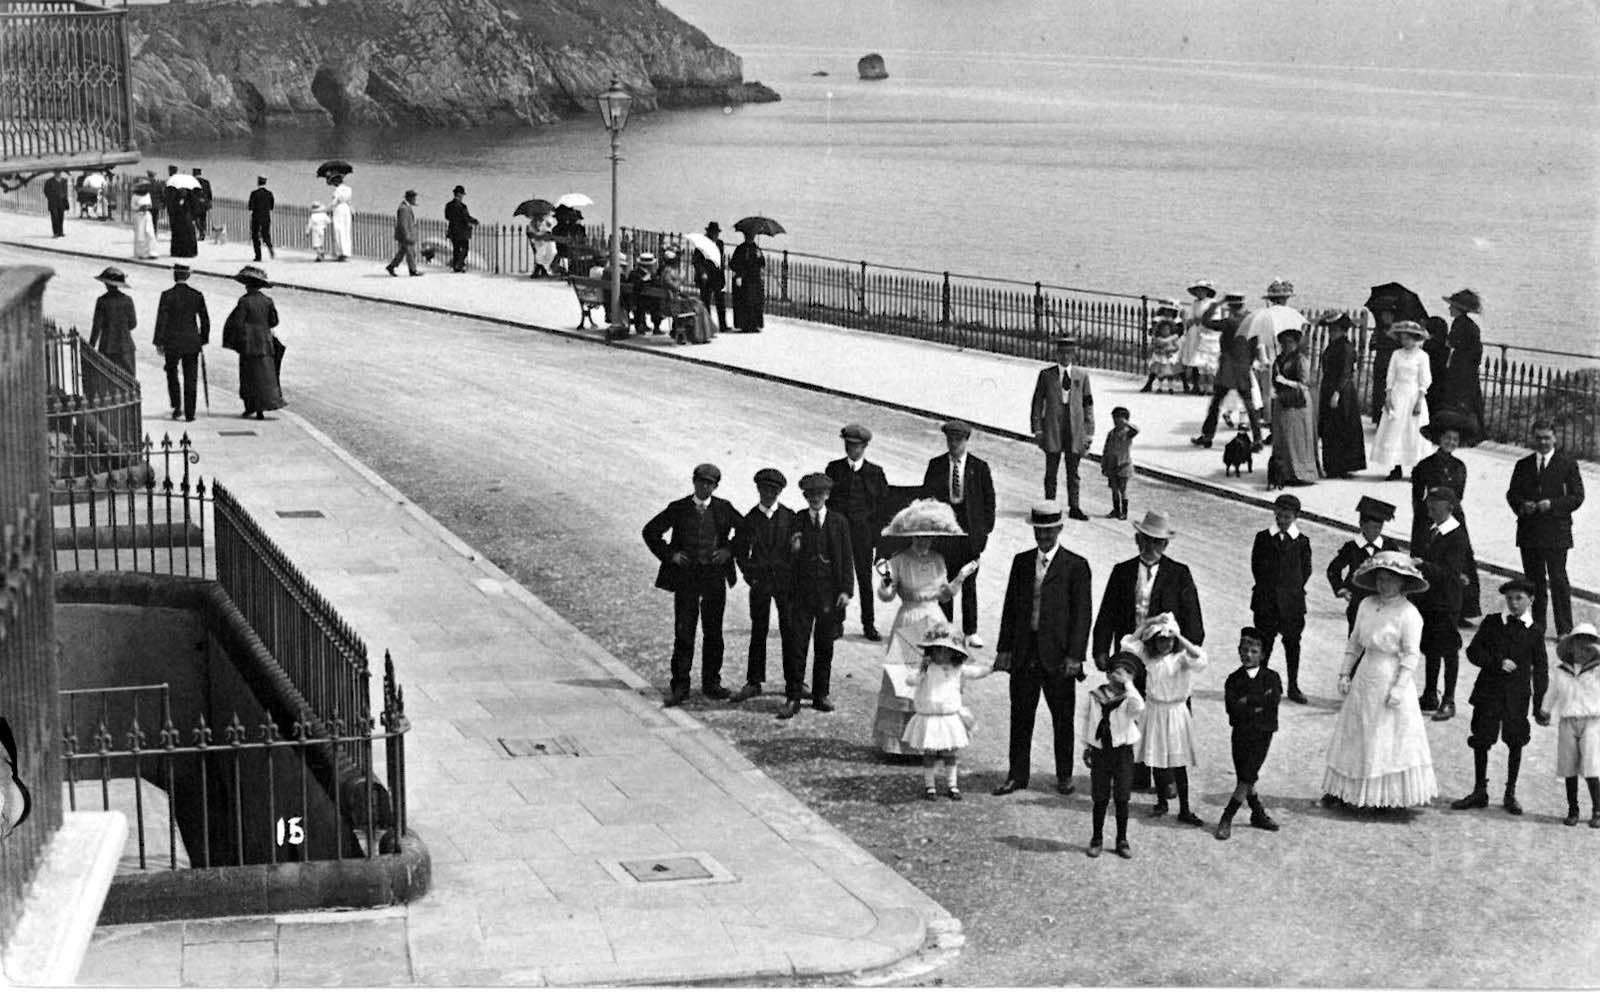 photo of people on a coastal esplanade in their Edwardian Sunday best with the sea beyond them